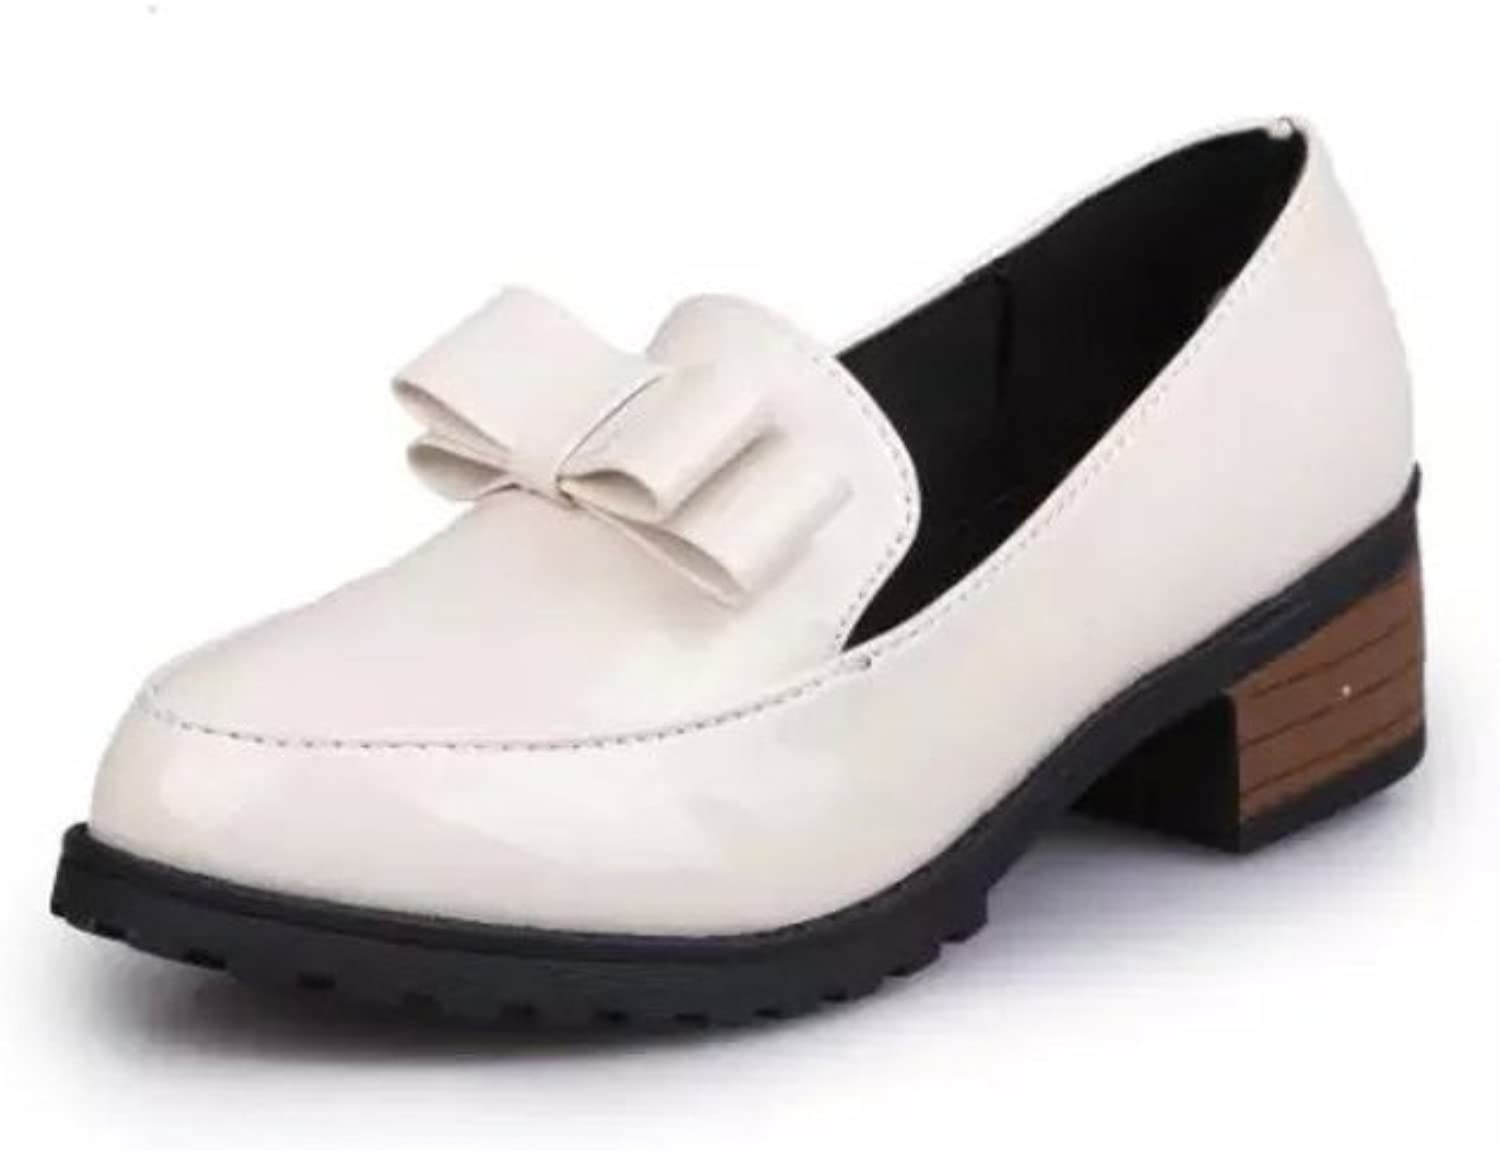 Coarse bow shoes with feet in spring Casual shoes with light, circular head